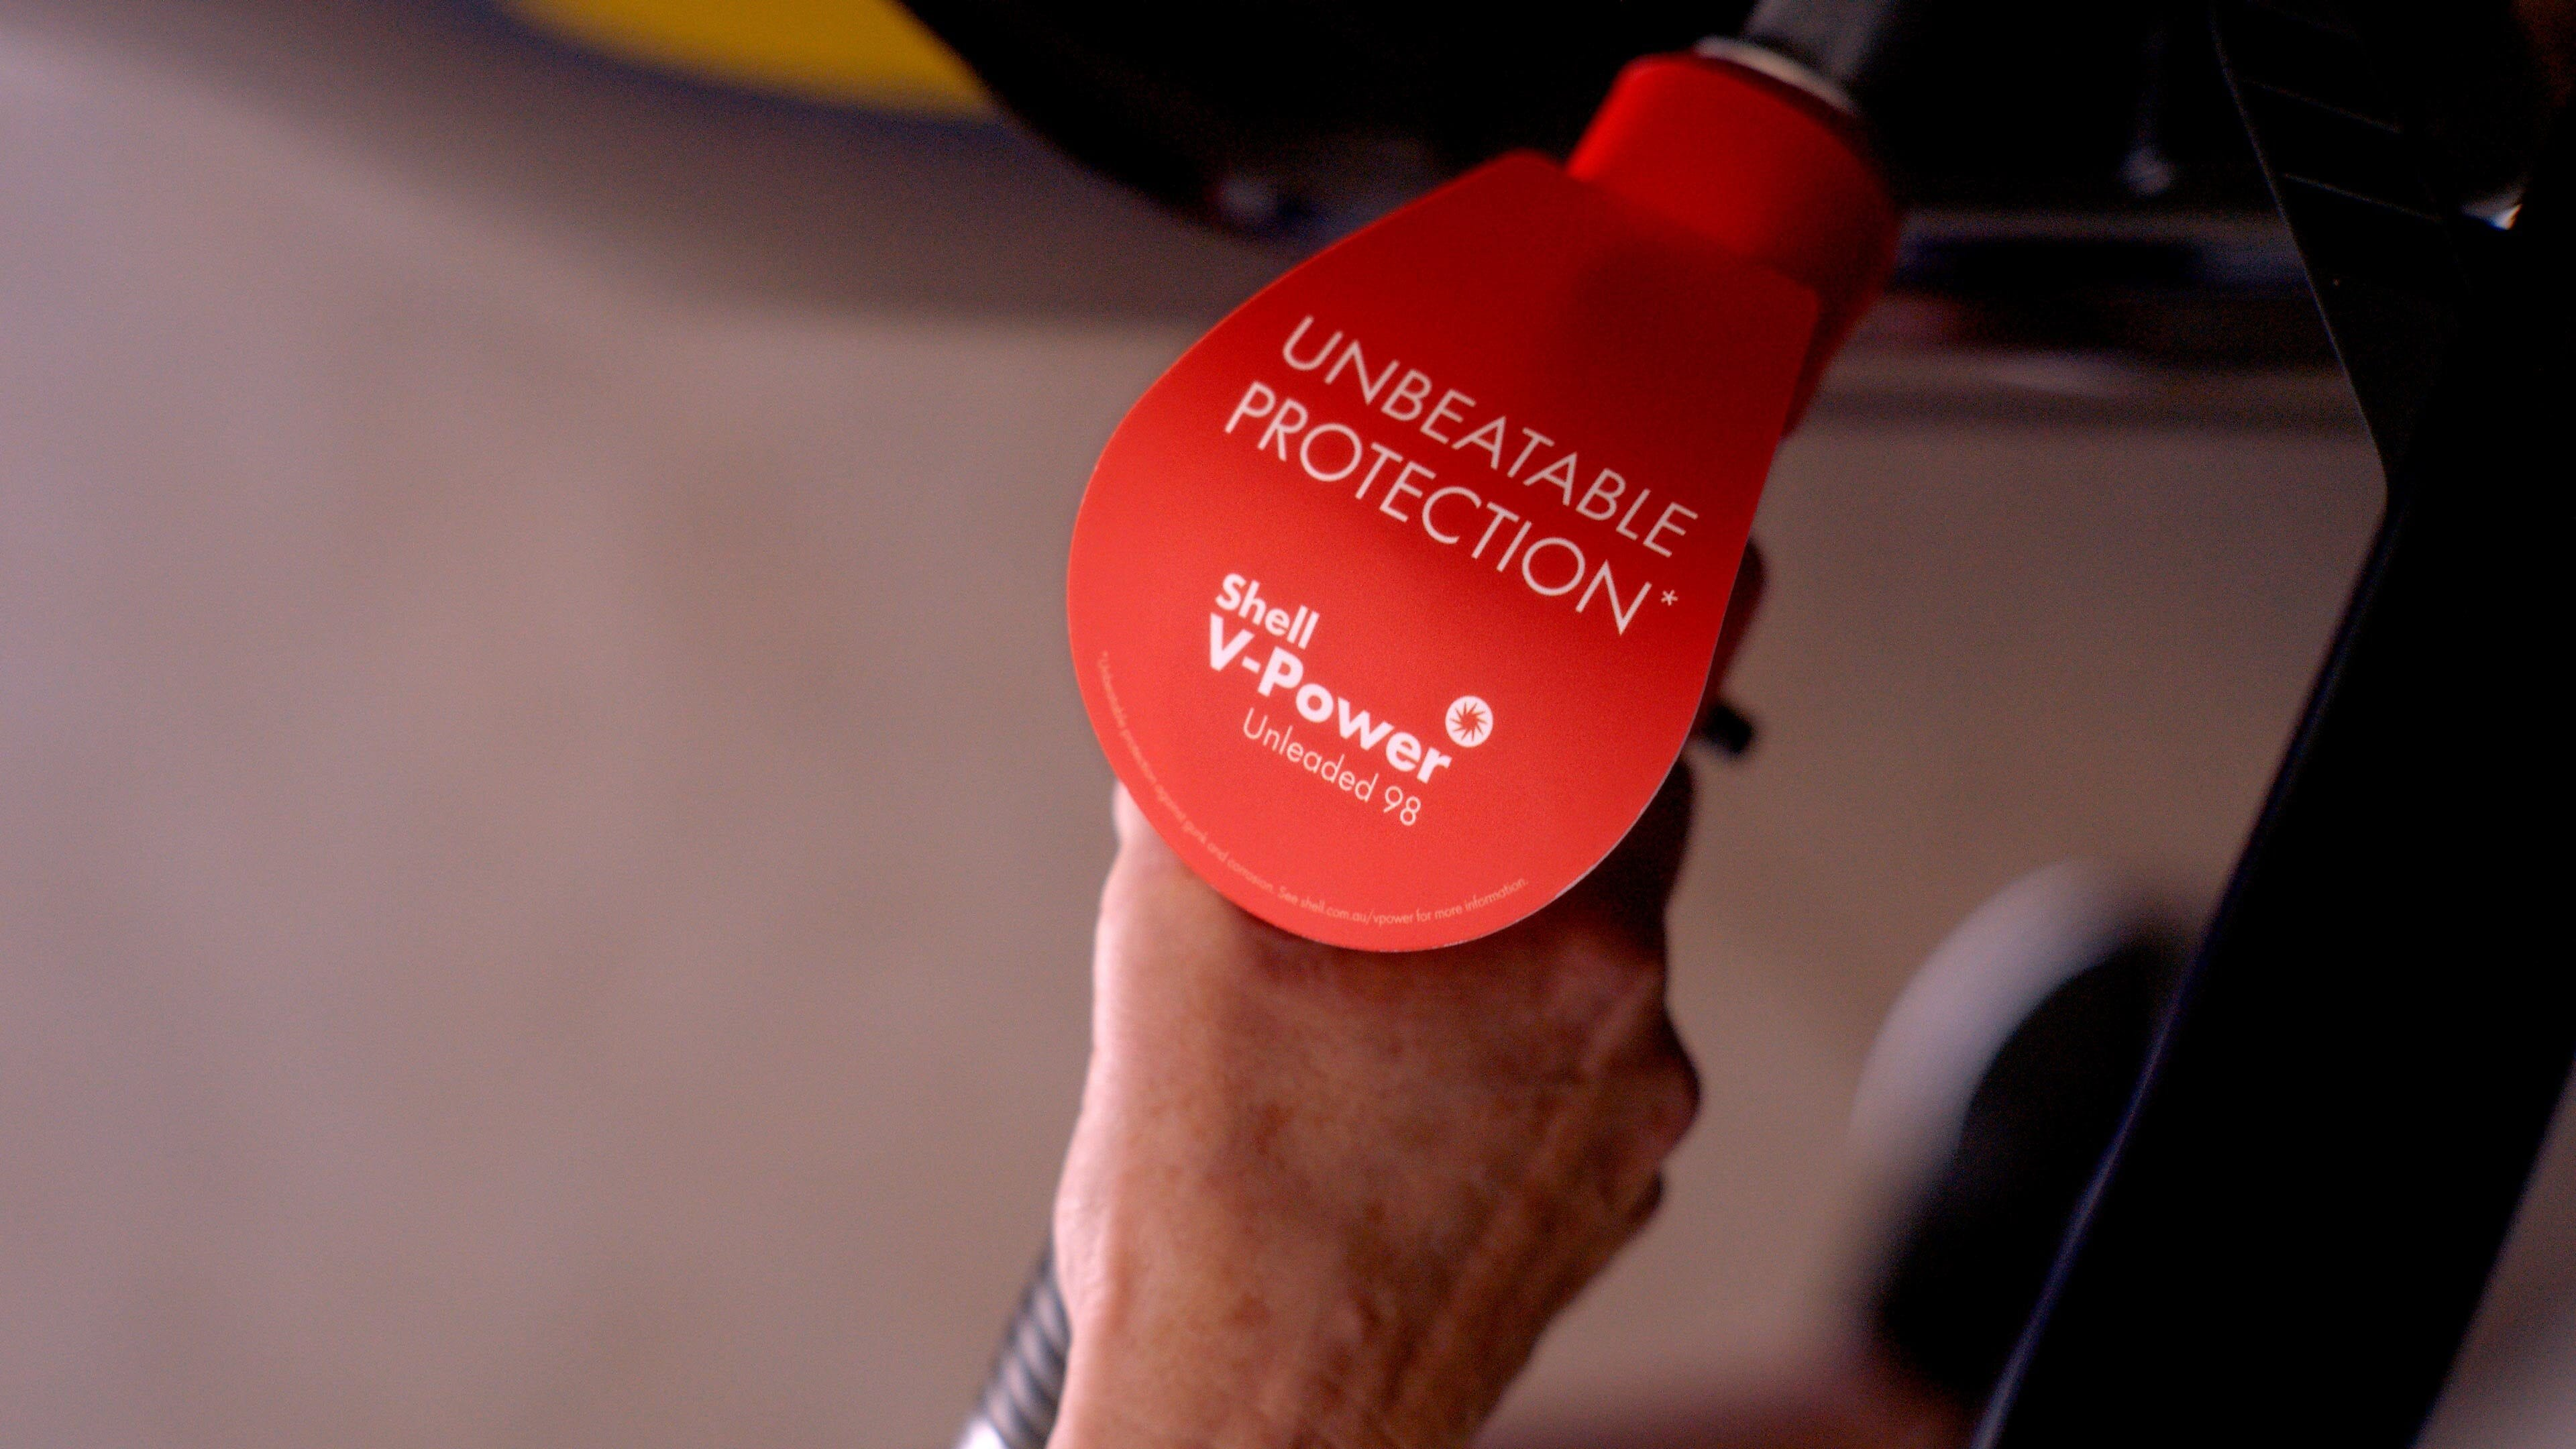 Shell V-Power Premium Fuels